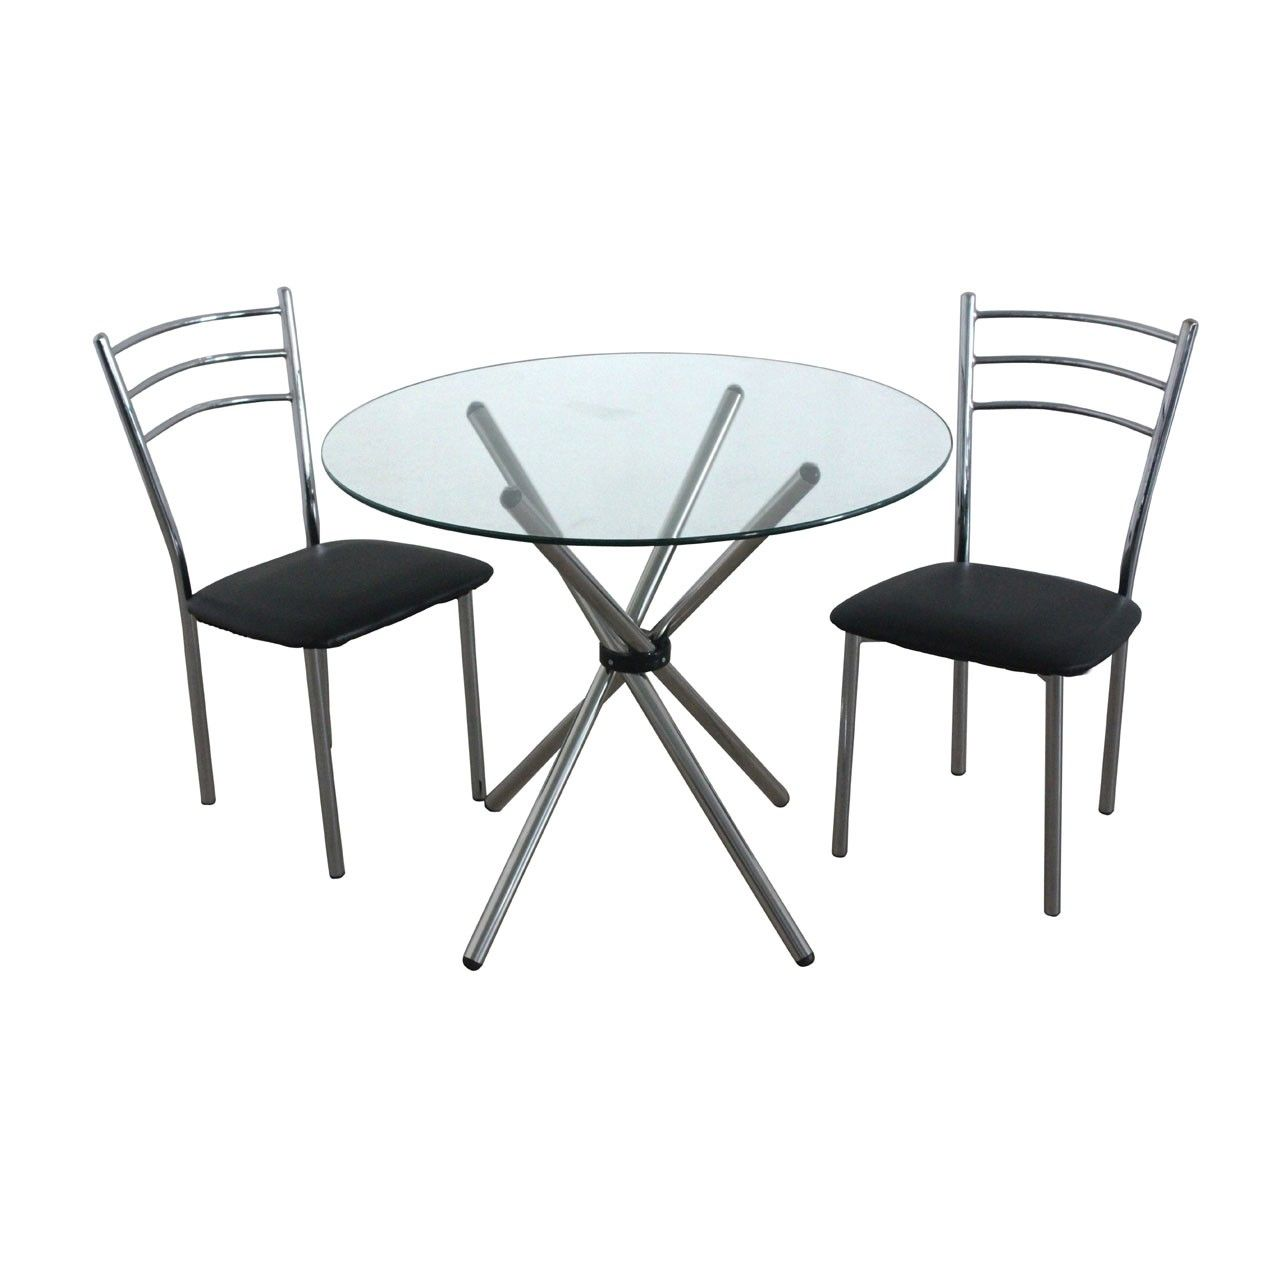 Dining Set, Black Leather Effect/Chromed Steel Chairs, Glass Table  Top/Chromed Steel Legs